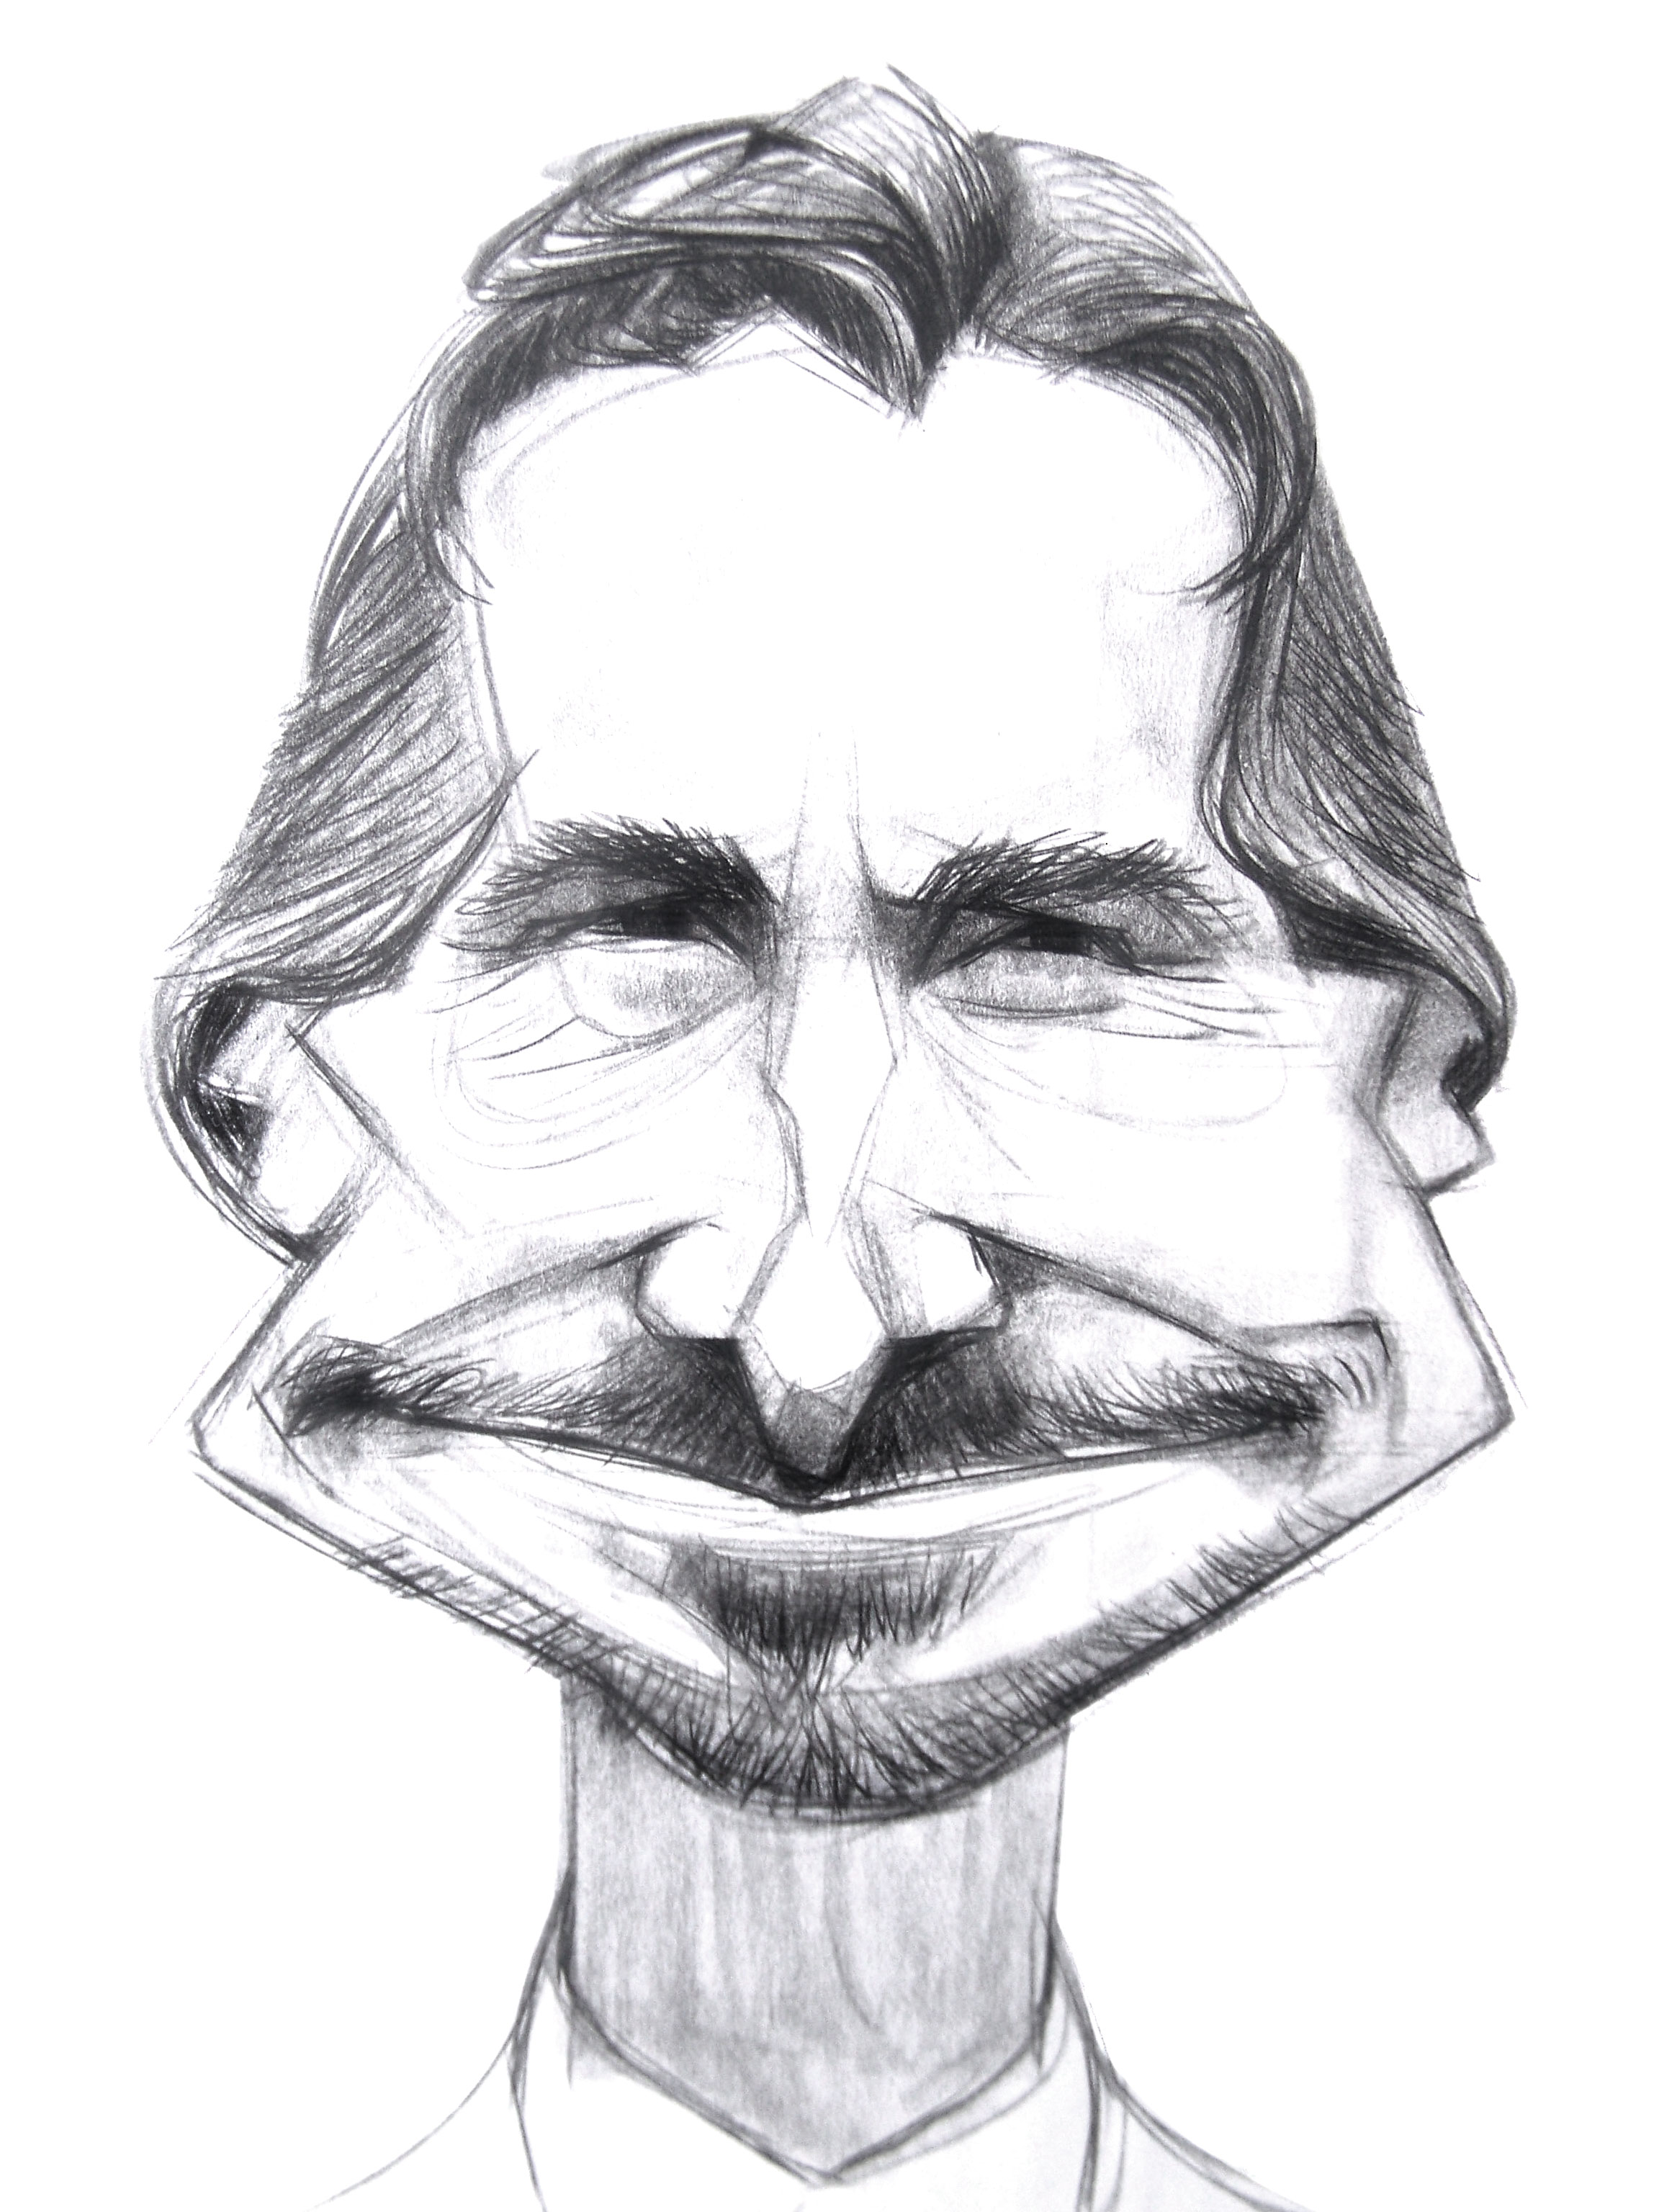 Christian Bale-digital sketches Showflipper